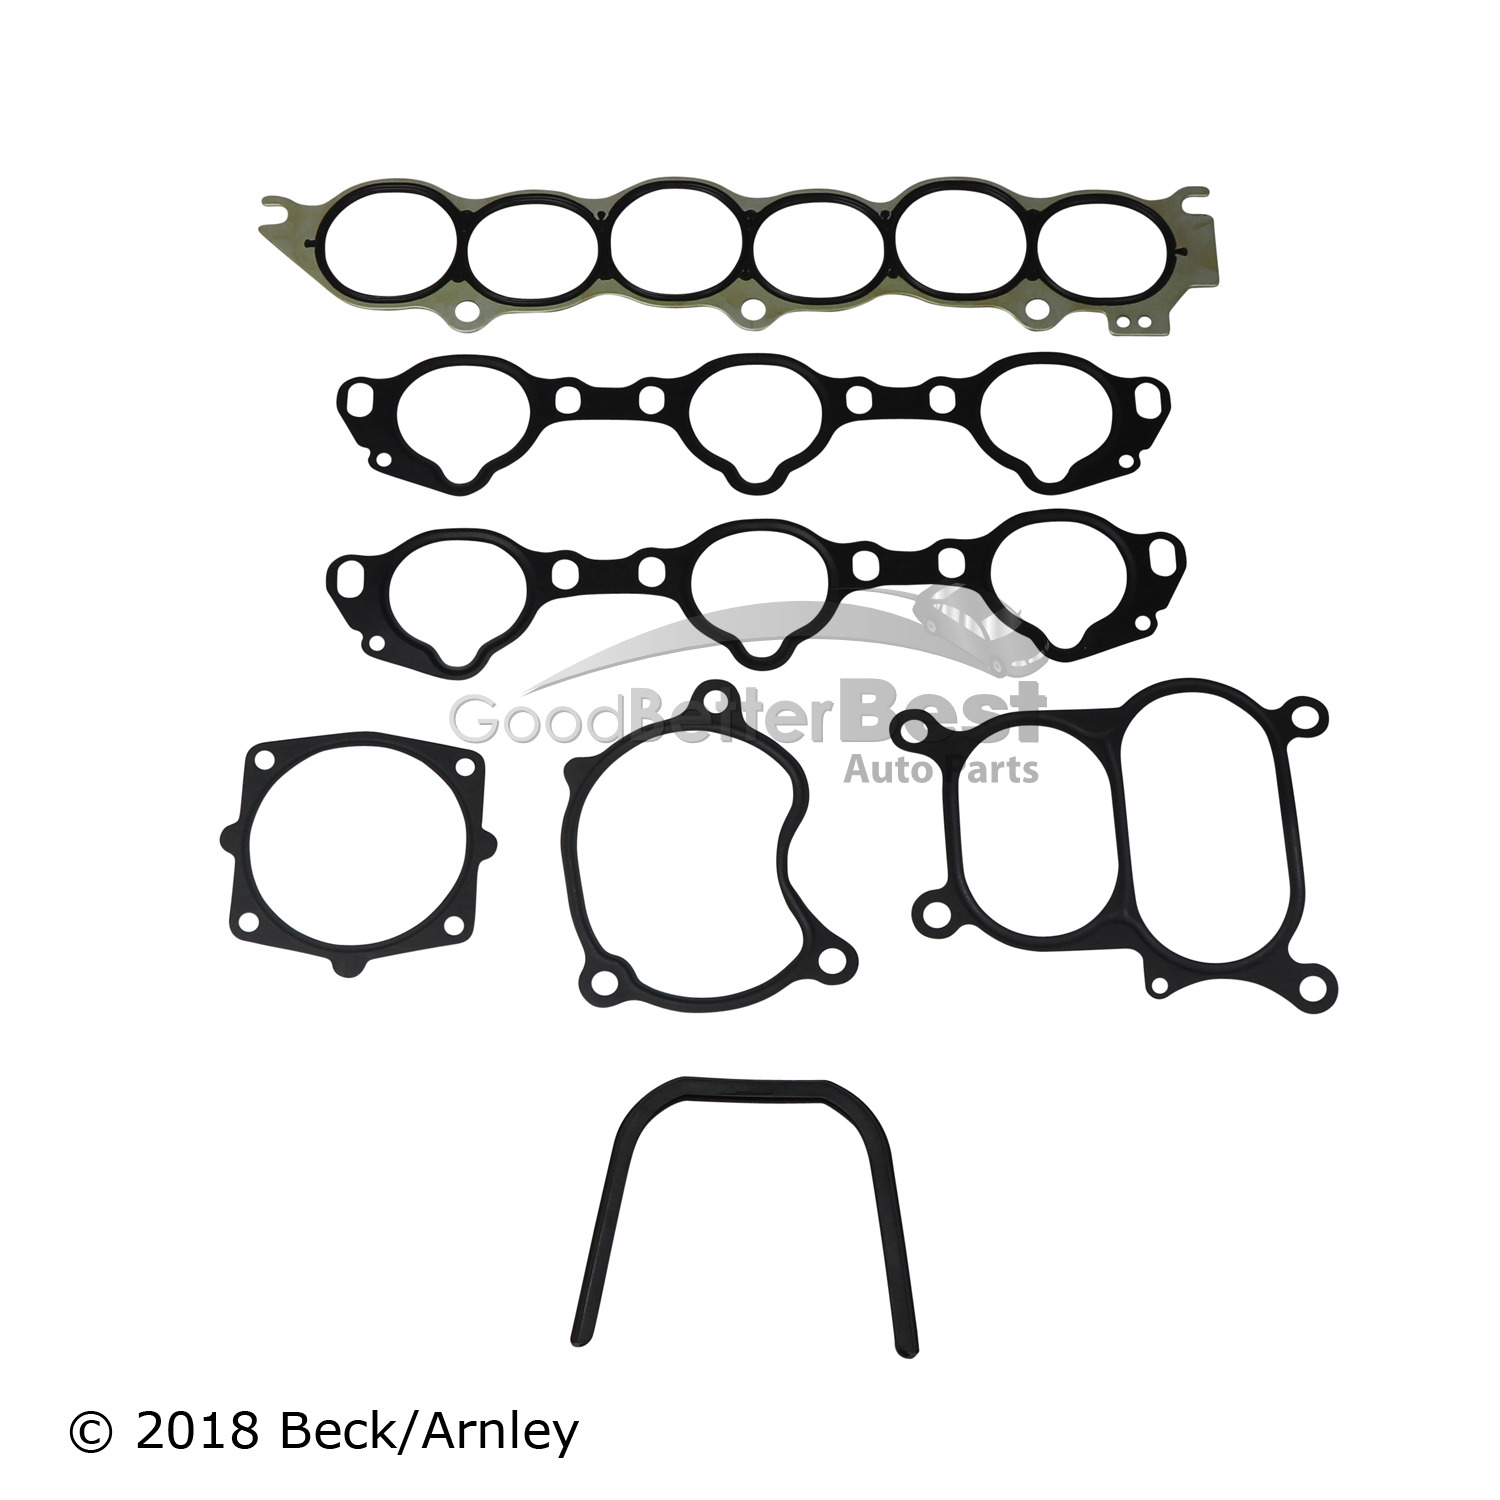 New Beck Arnley Engine Intake Manifold Gasket Set 037